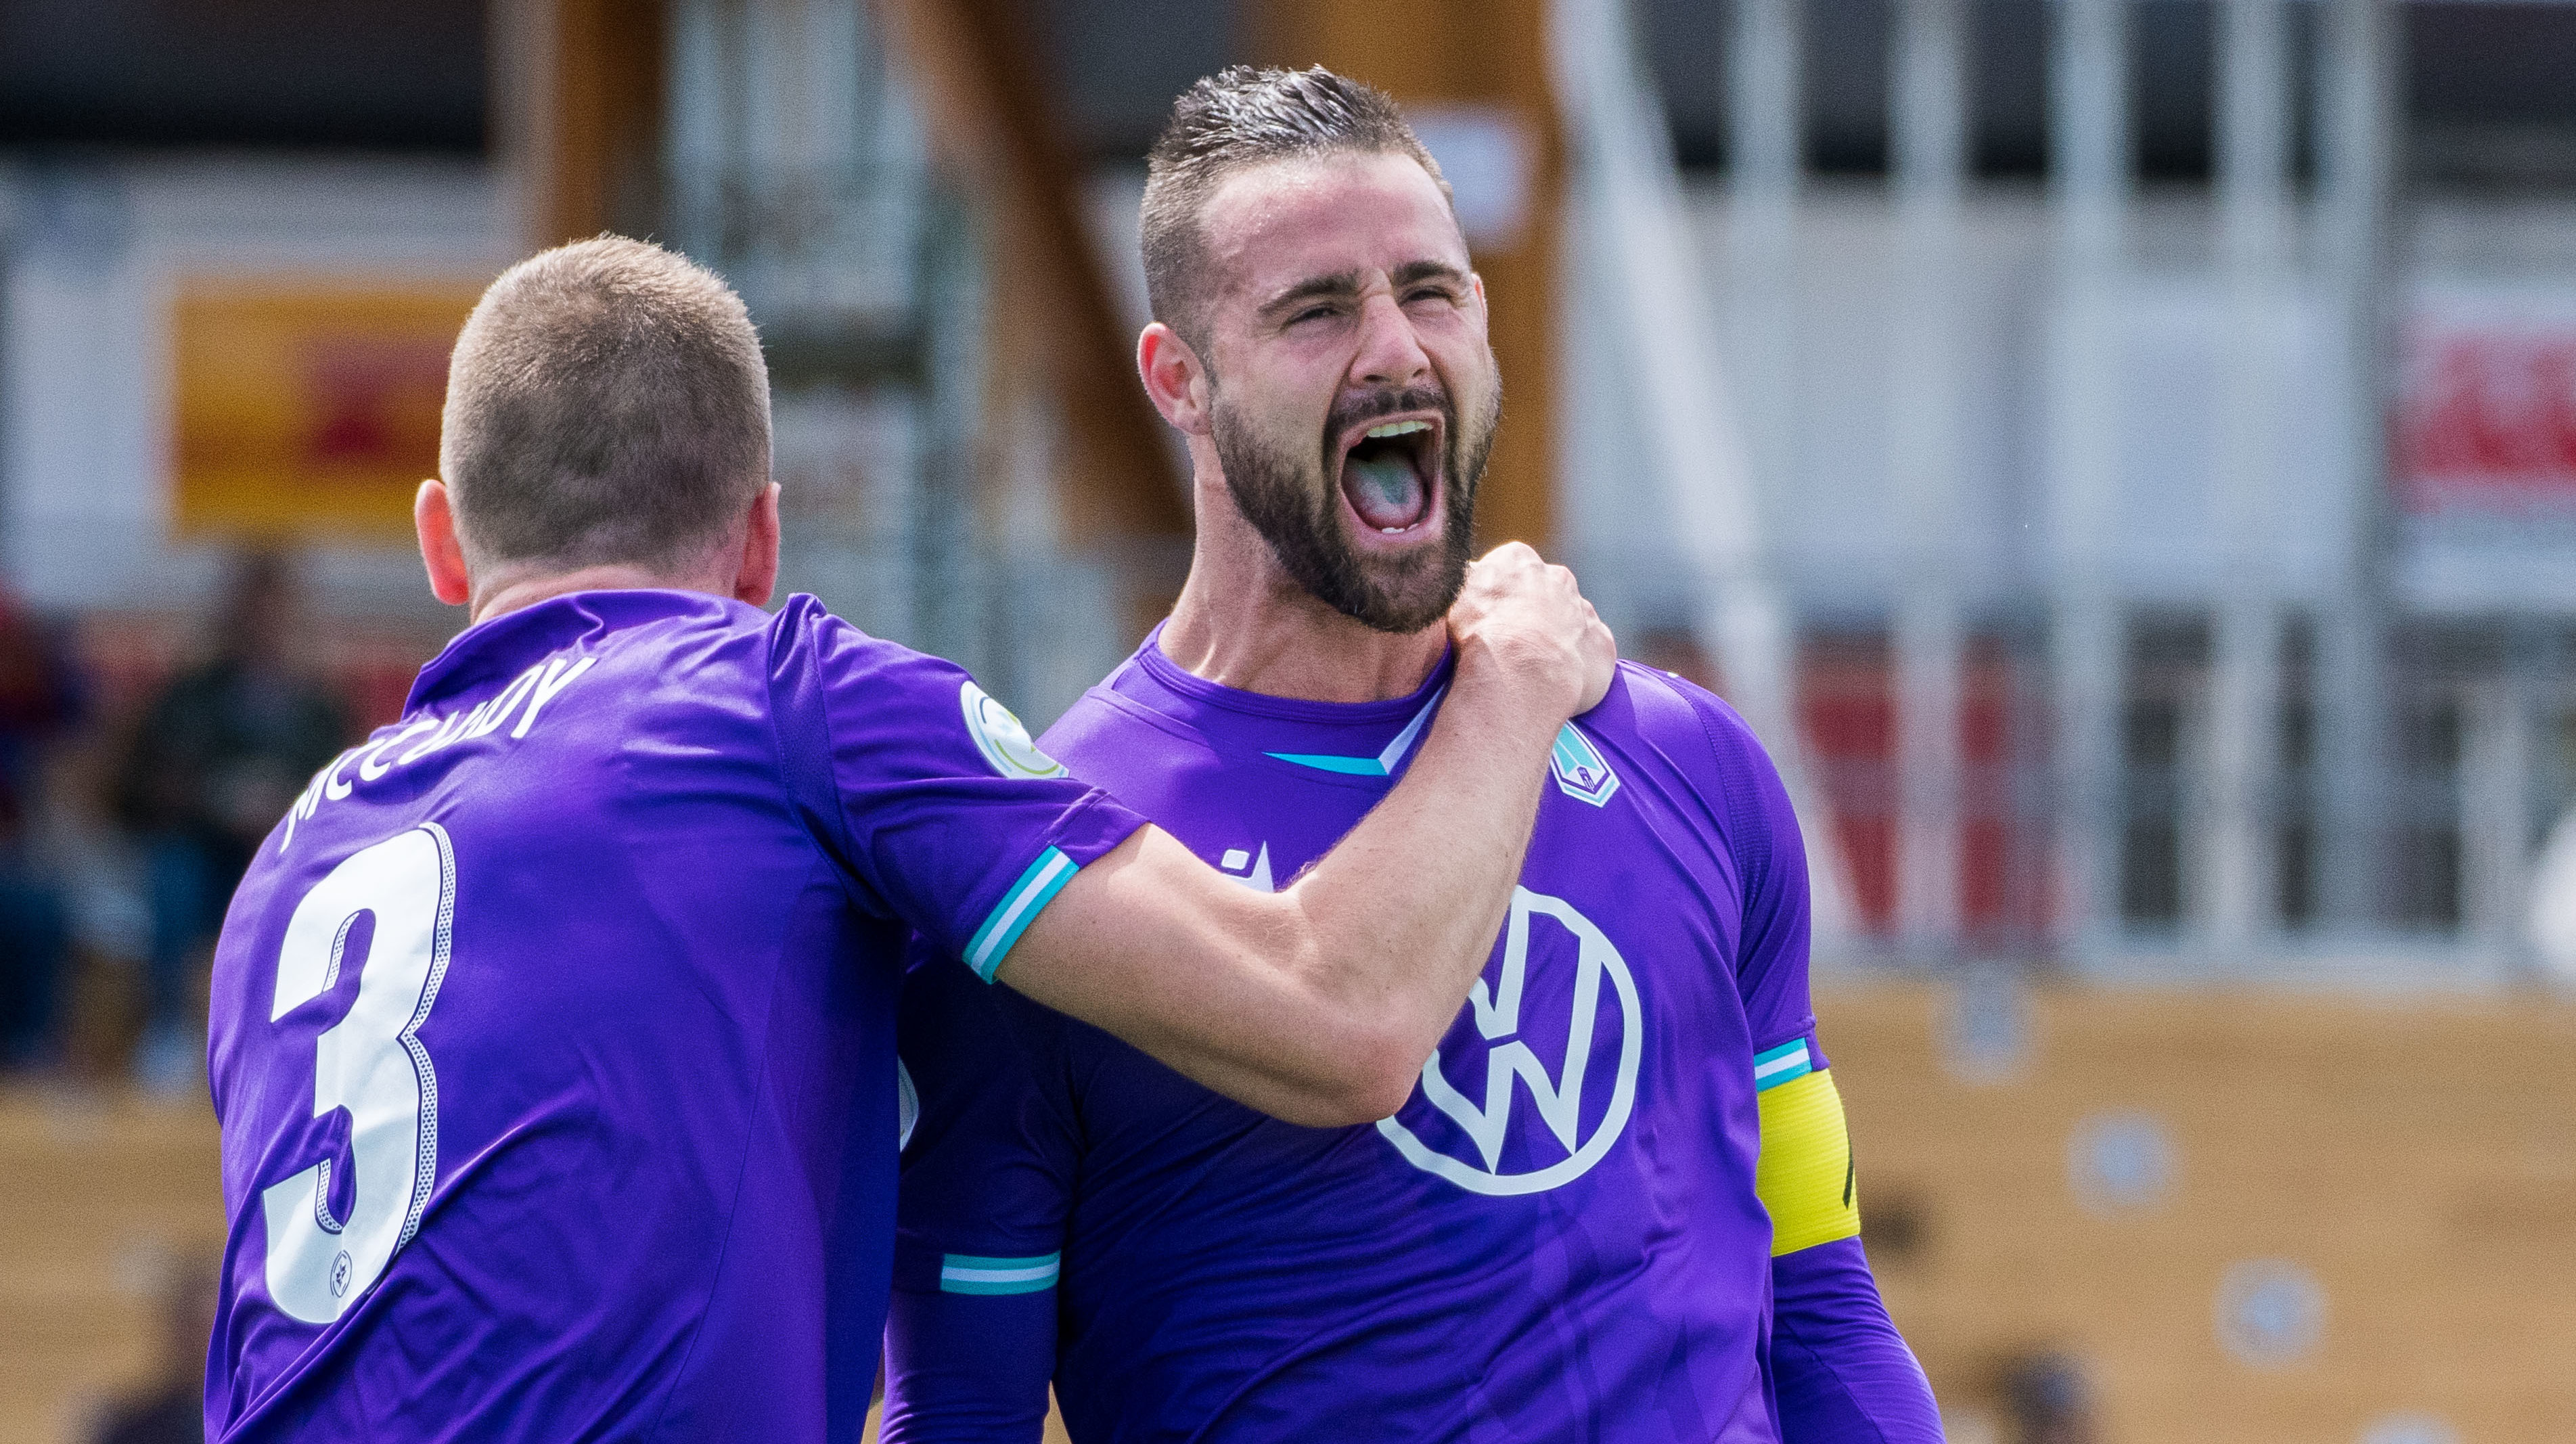 Striker Marcus Haber celebrates scoring his first Pacific FC goal. (Photo courtesy Pacific FC)..